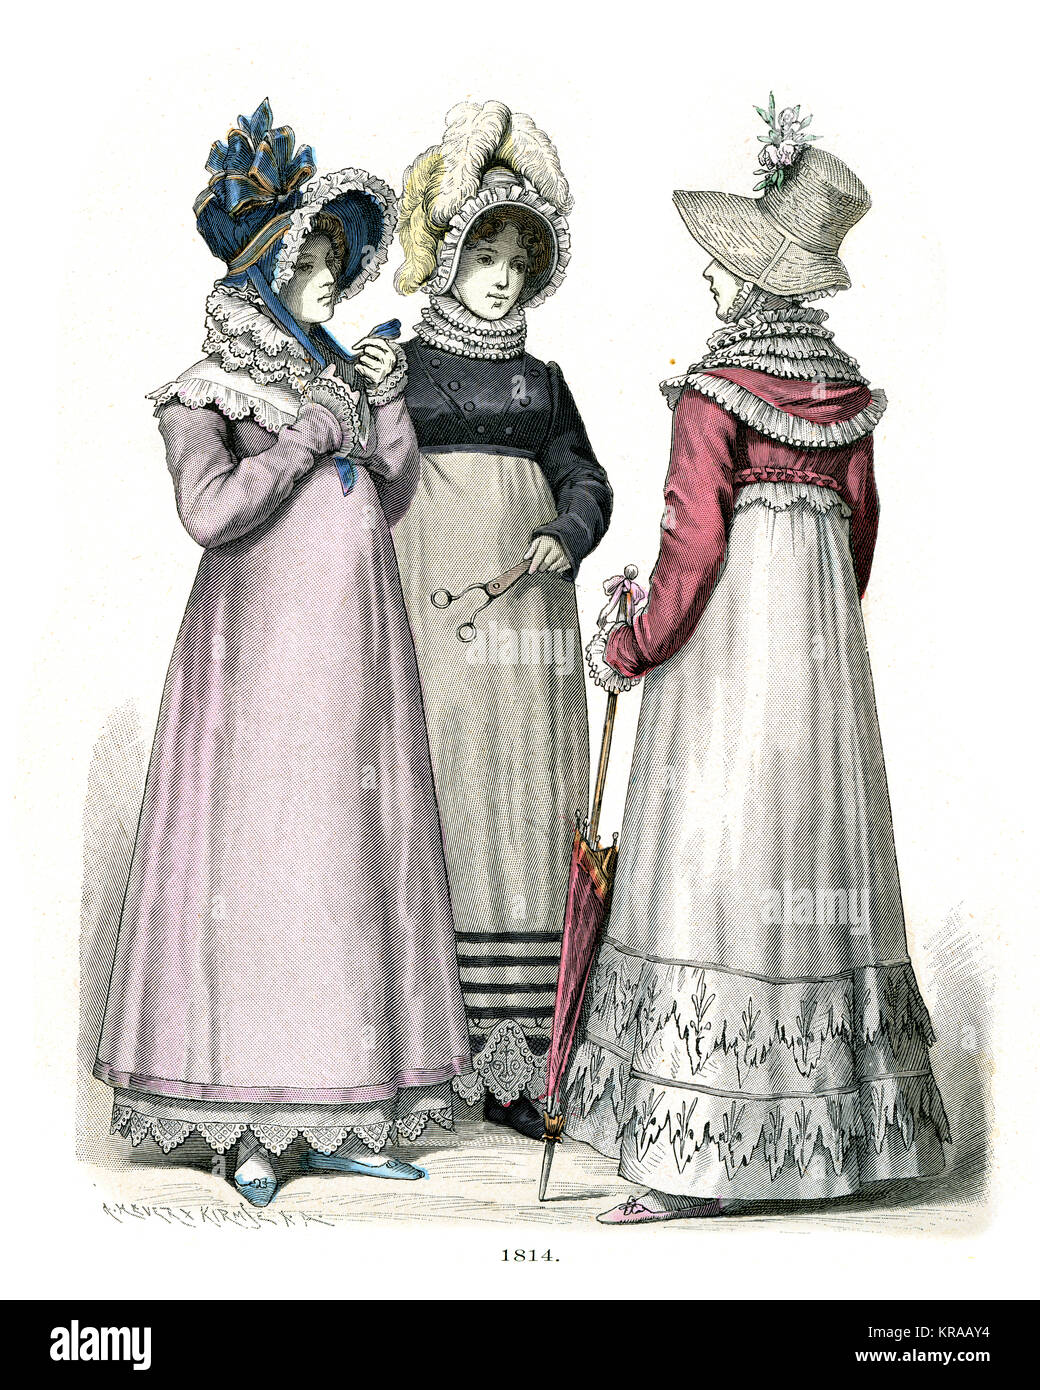 Womens fashions of the early 19th Century - Stock Image